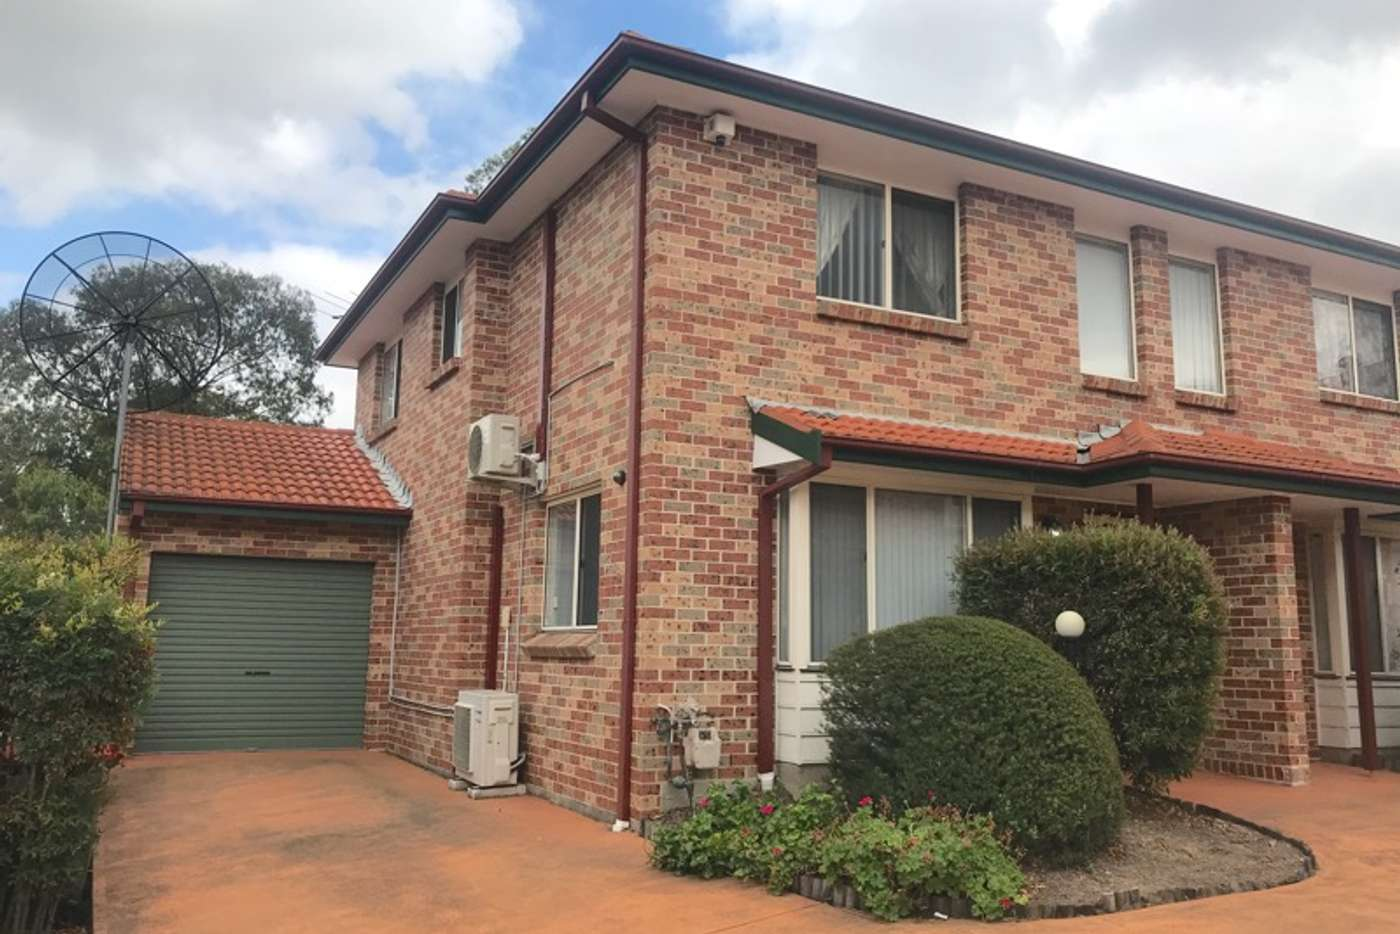 Main view of Homely townhouse listing, 4 Obi Lane, Toongabbie NSW 2146